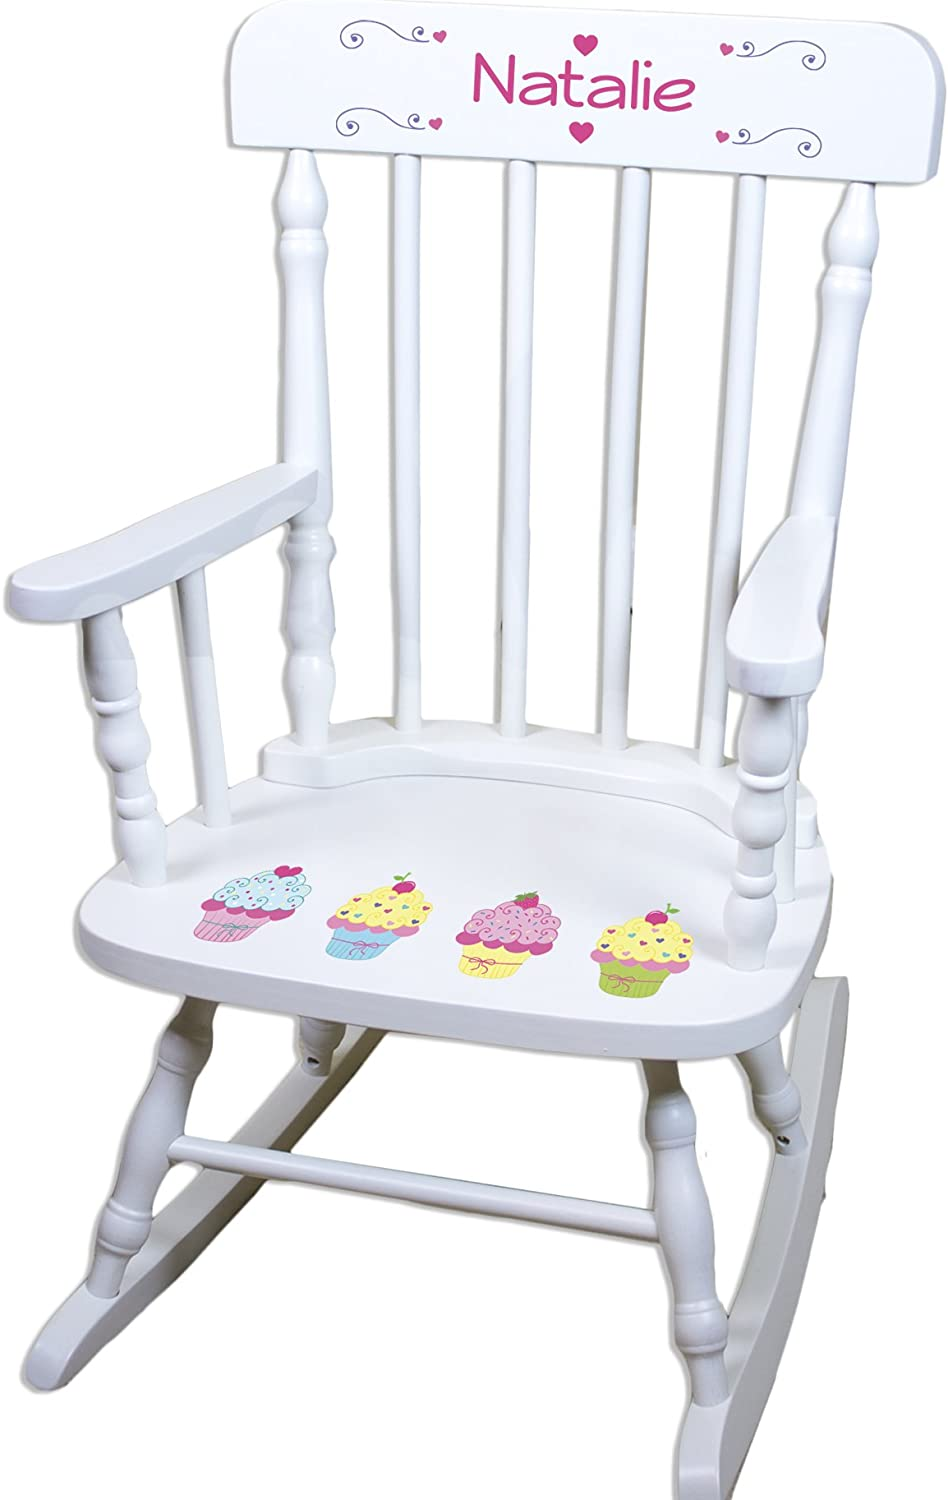 Chicago Mall Children's Personalized White Chair Max 81% OFF Cupcake Rocking